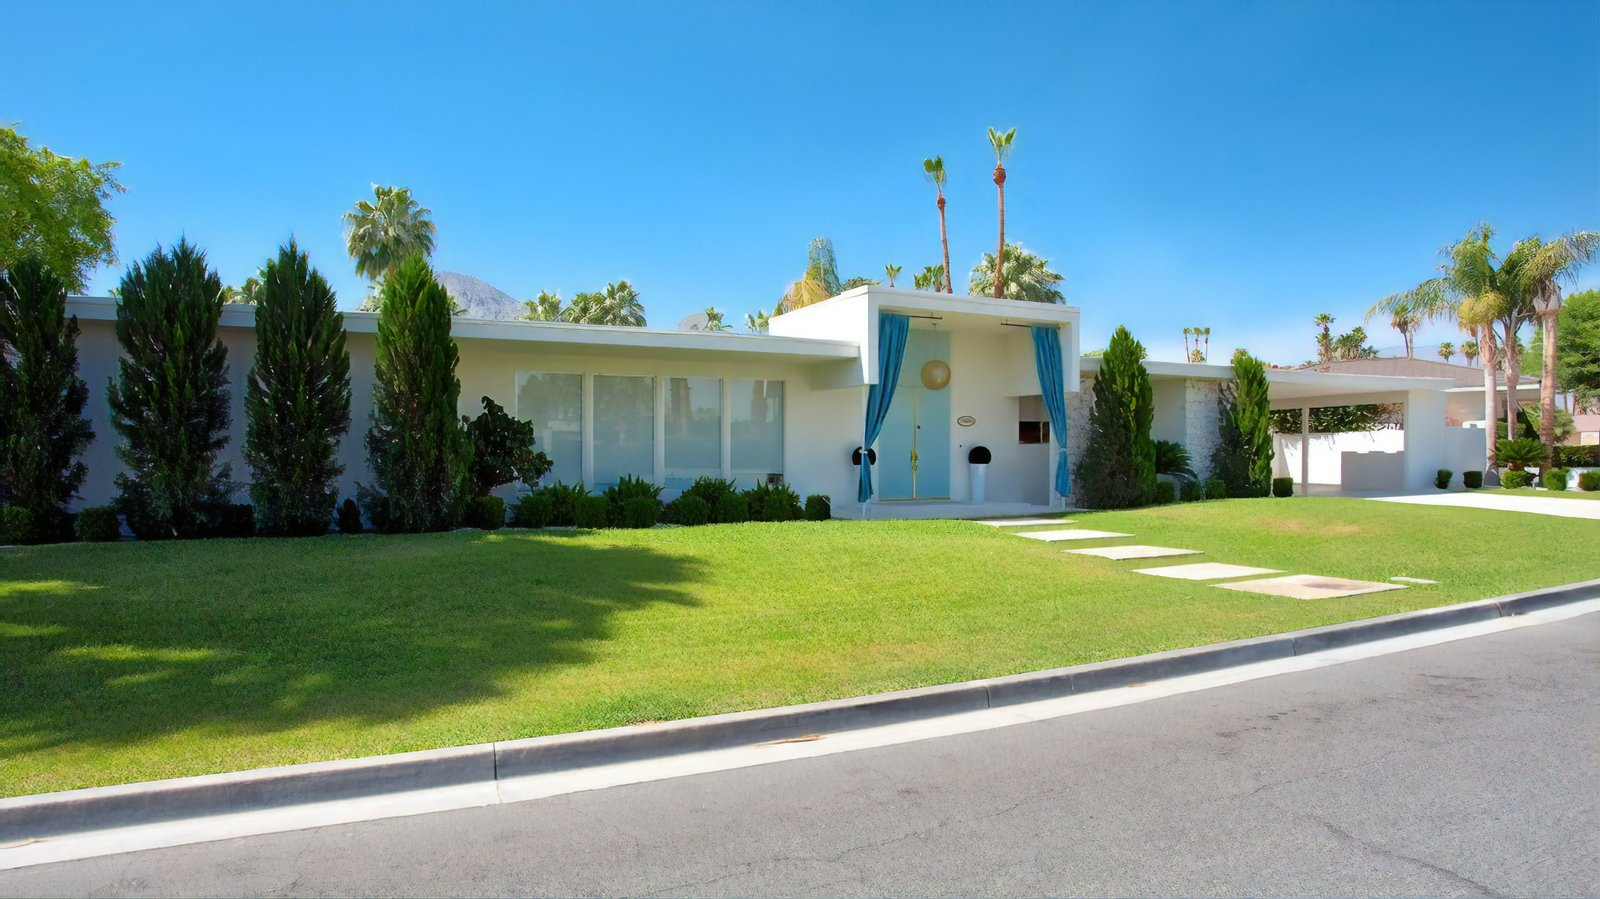 Photo 1 of 11 in You Can Rent Lucille Ball and Desi Arnaz's Palm